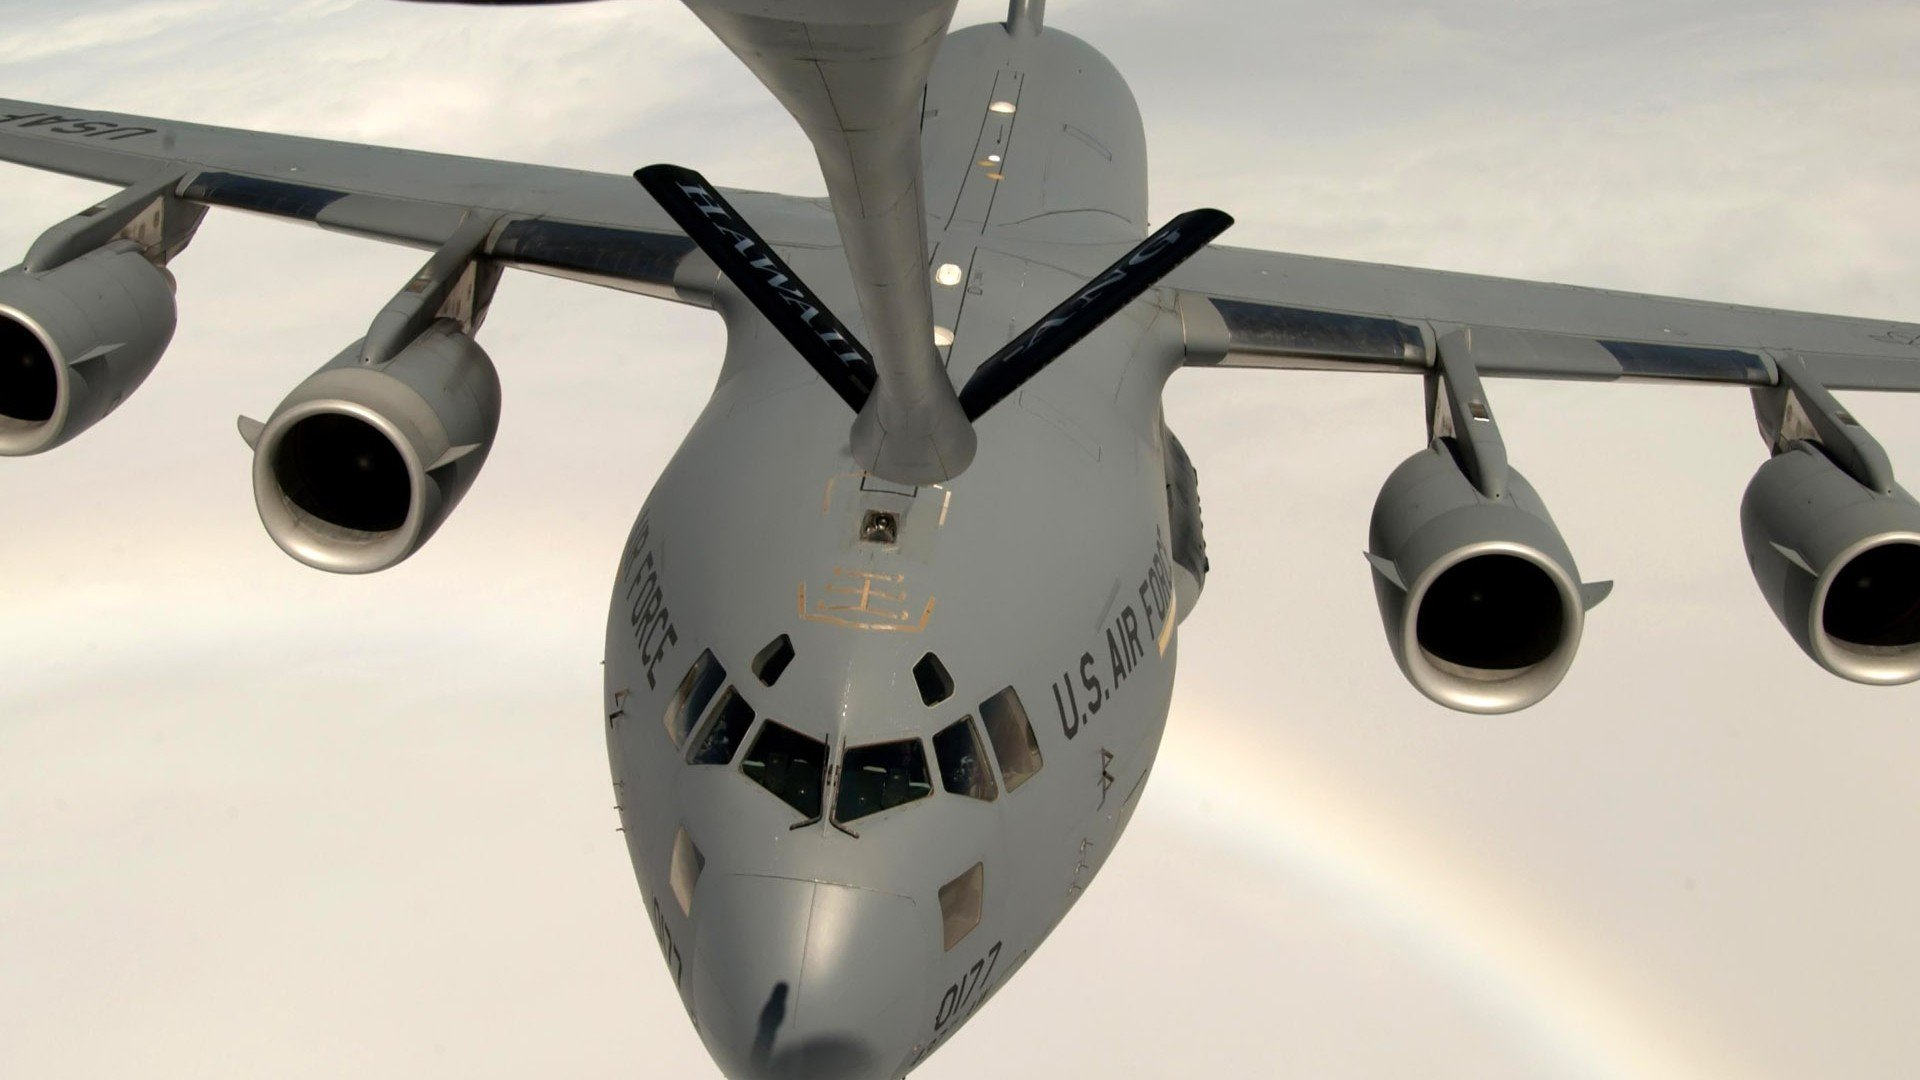 Free Boeing C-17 Globemaster III high quality wallpaper ID:495563 for full hd 1920x1080 PC